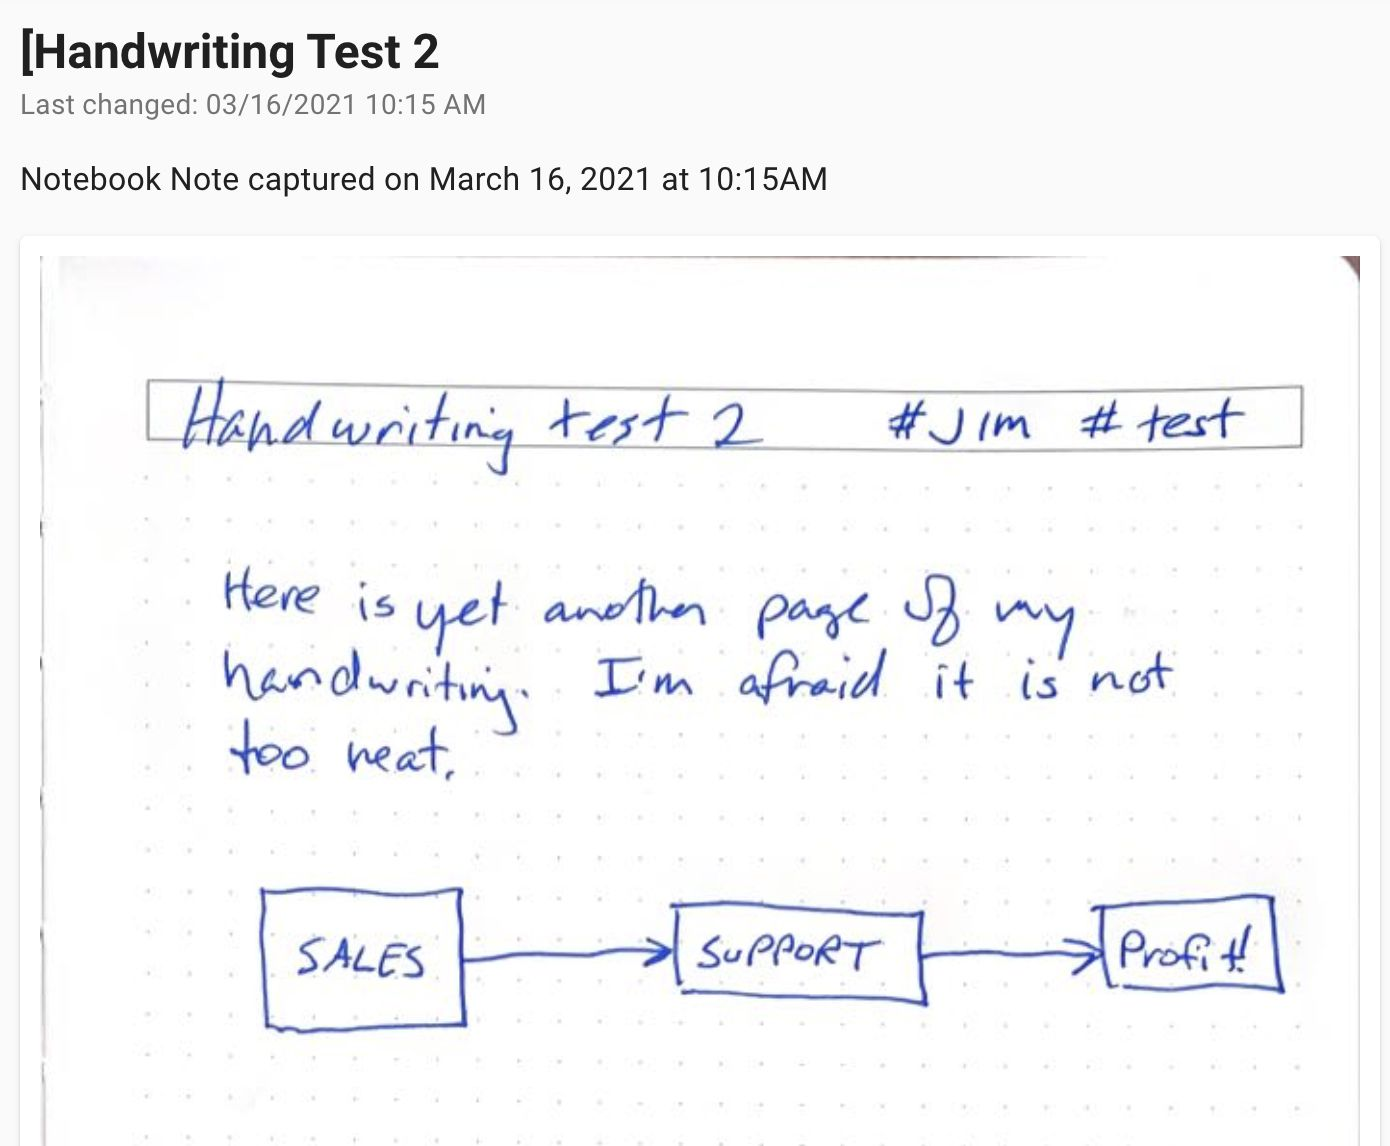 This is an example of a captured page from the Thinkers Smart Notebook shared over the web.